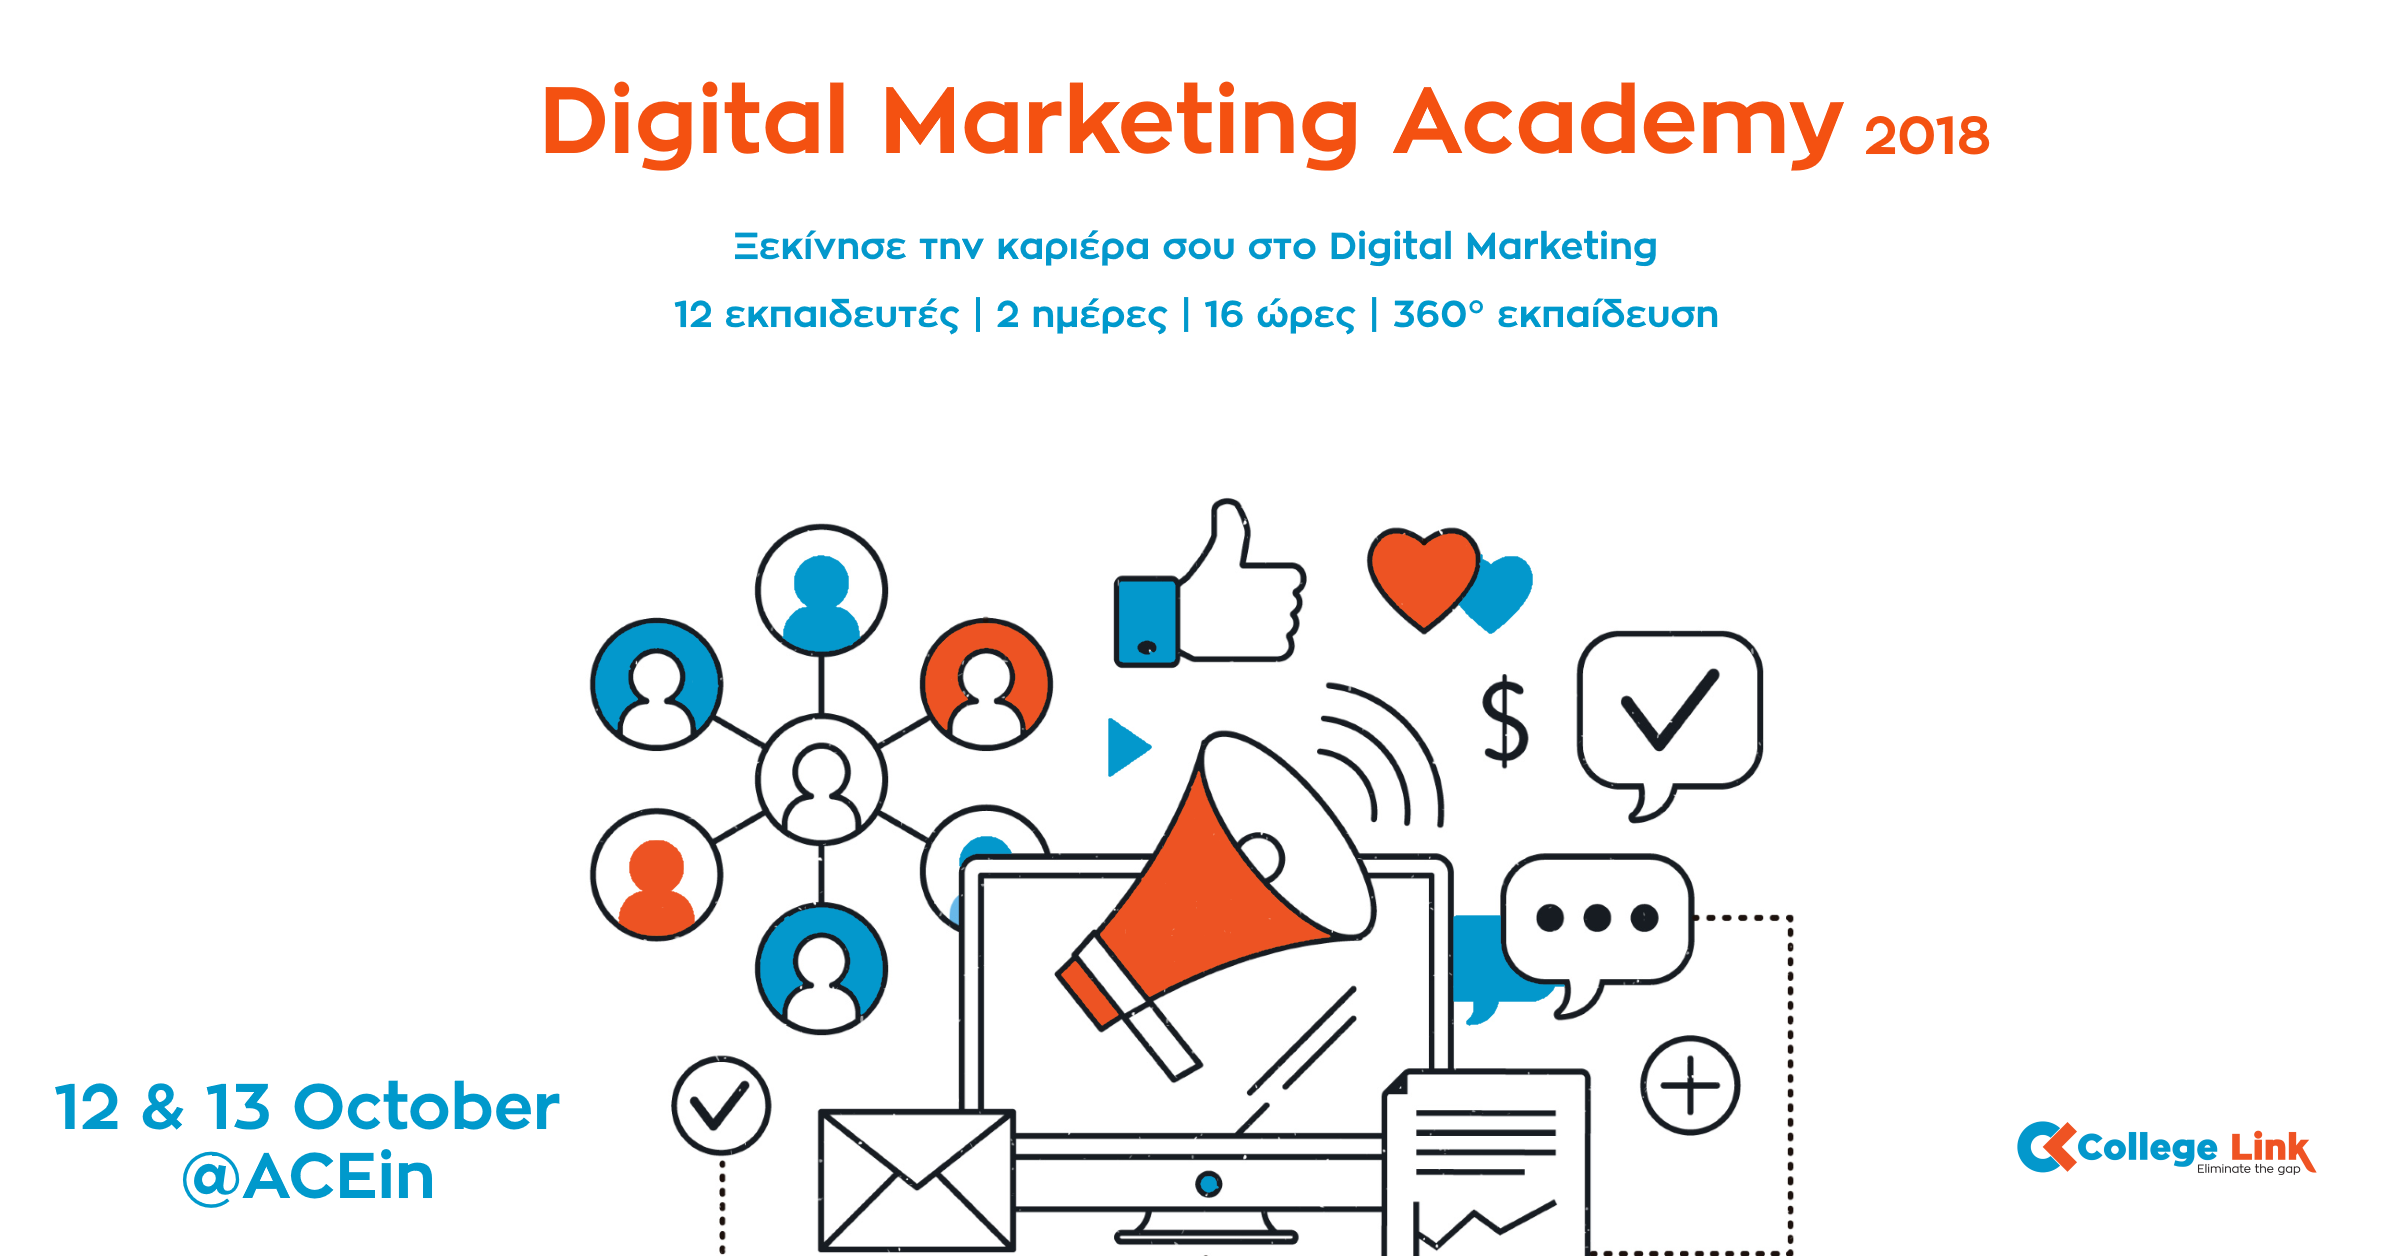 Digital Marketing Academy 2018